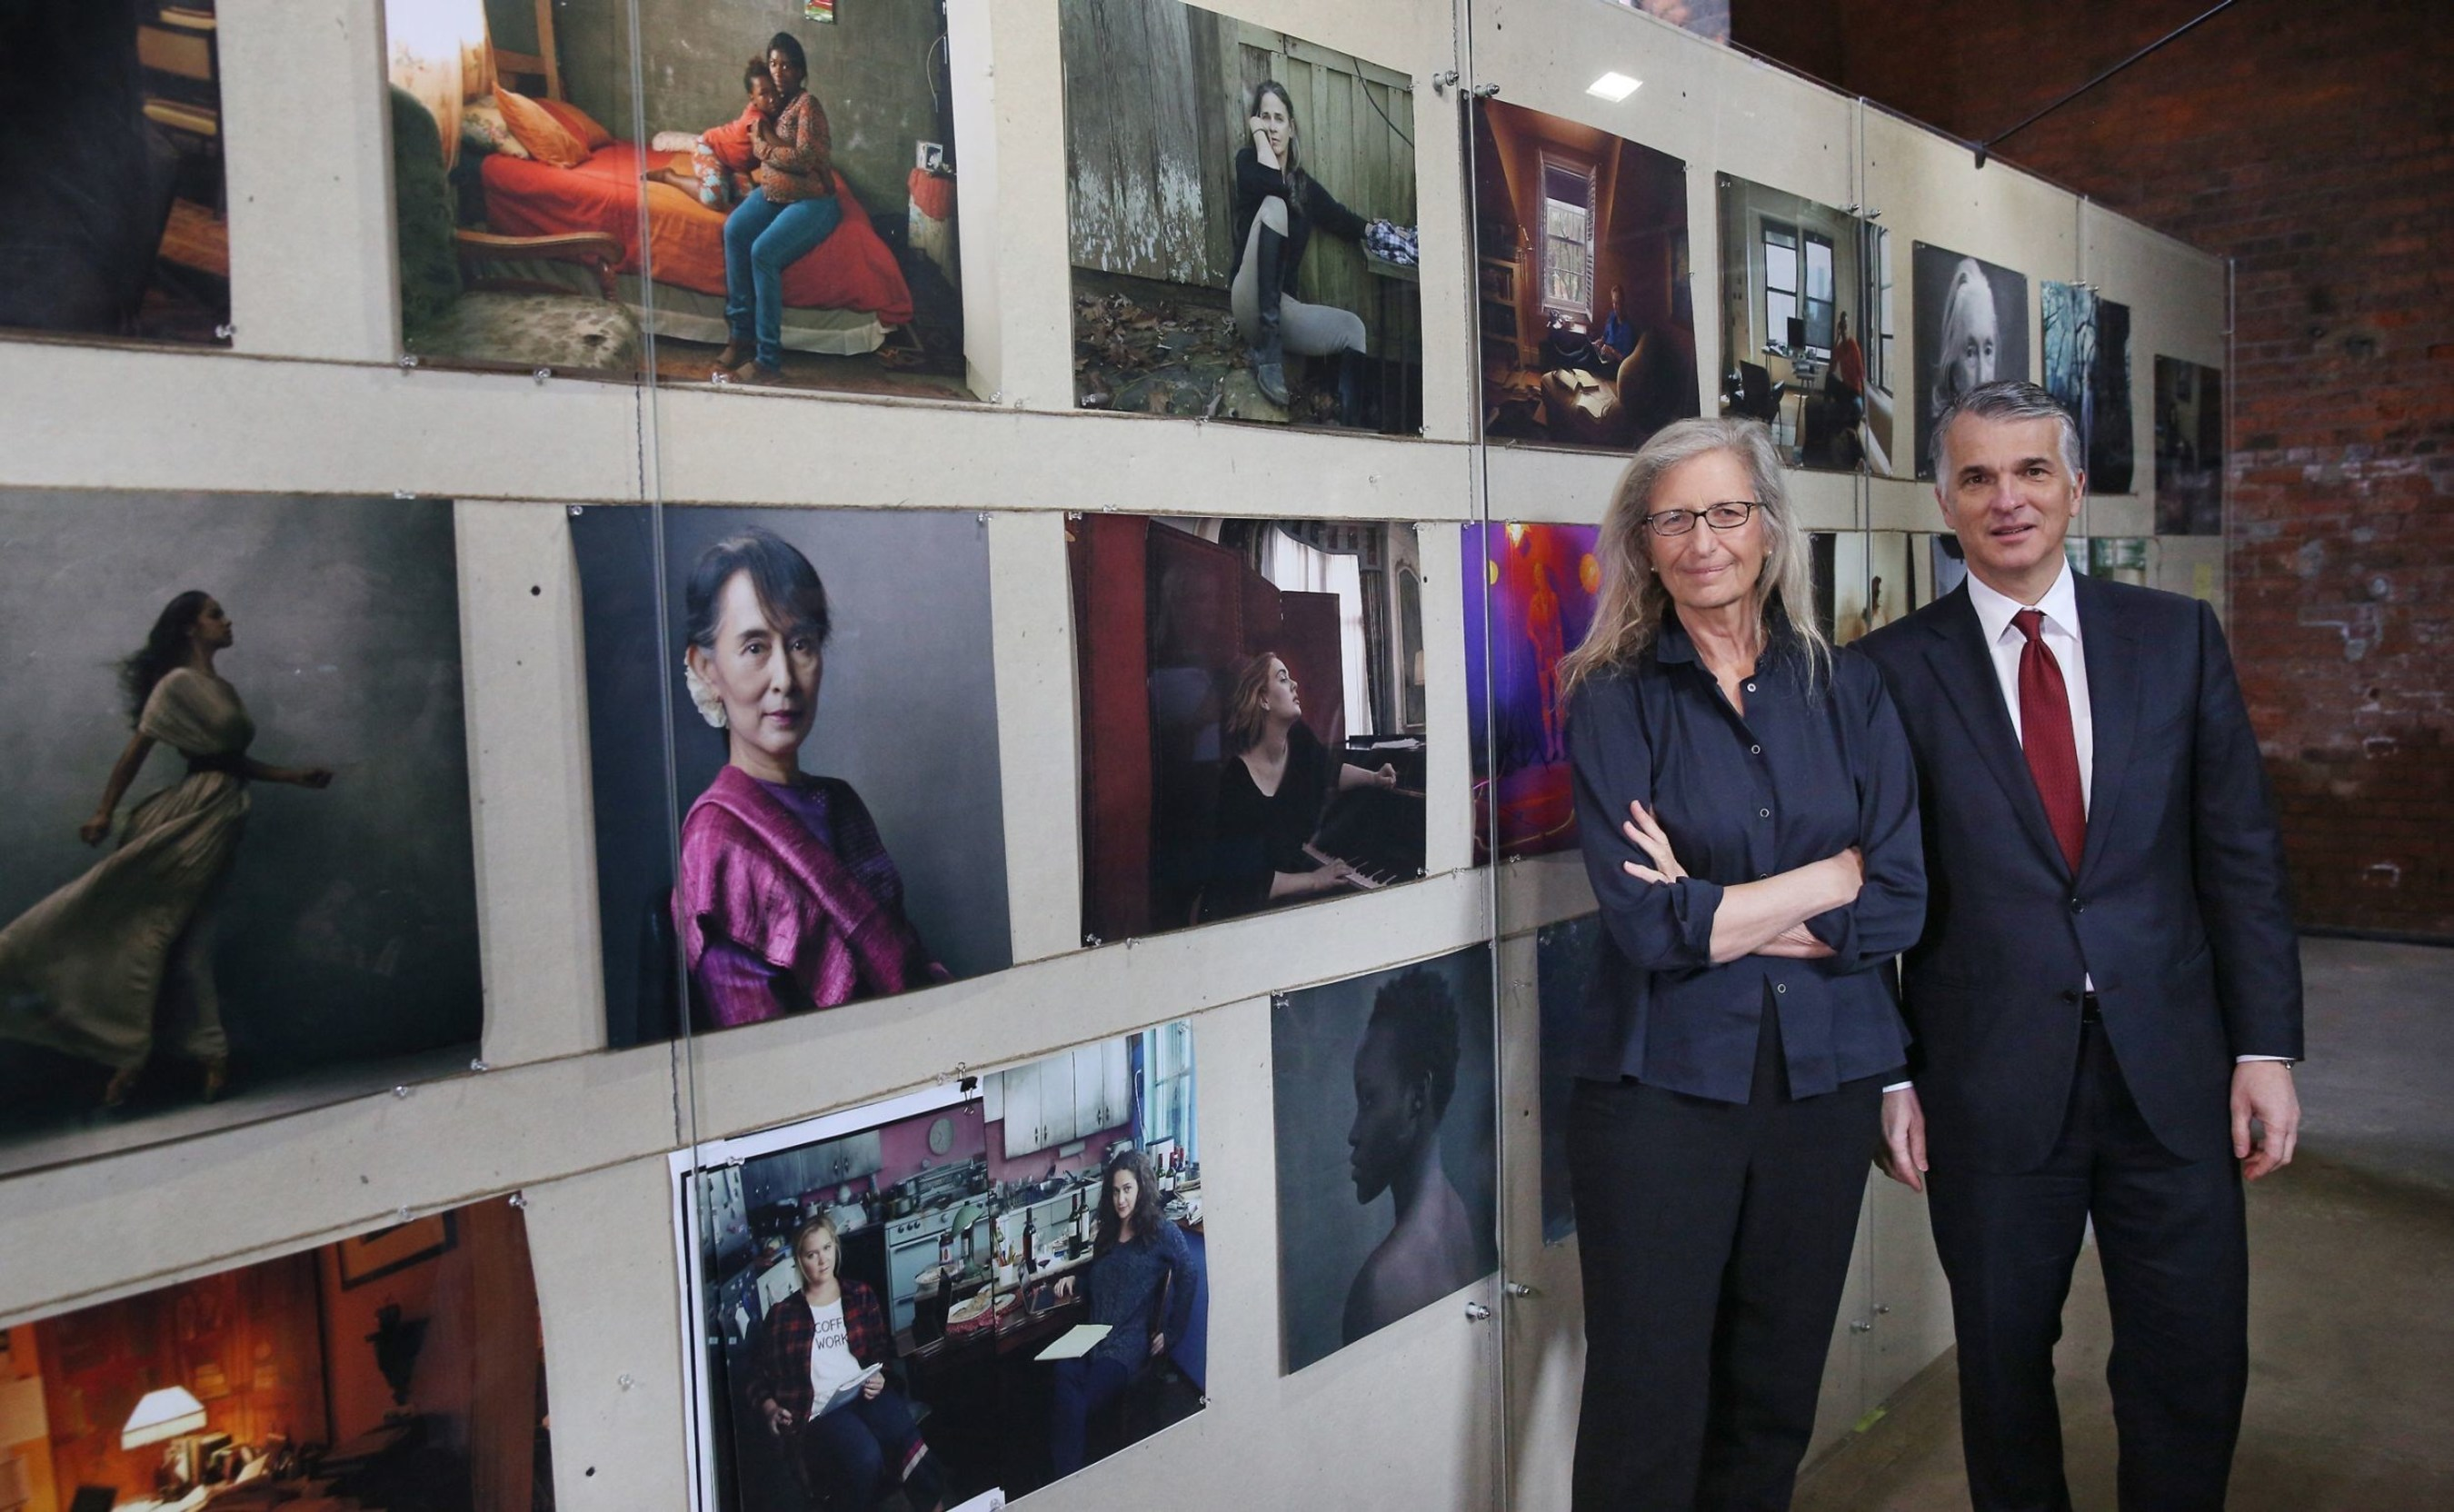 'WOMEN: New Portraits' - a Global Tour of New Photographs by Annie Leibovitz Launches in London